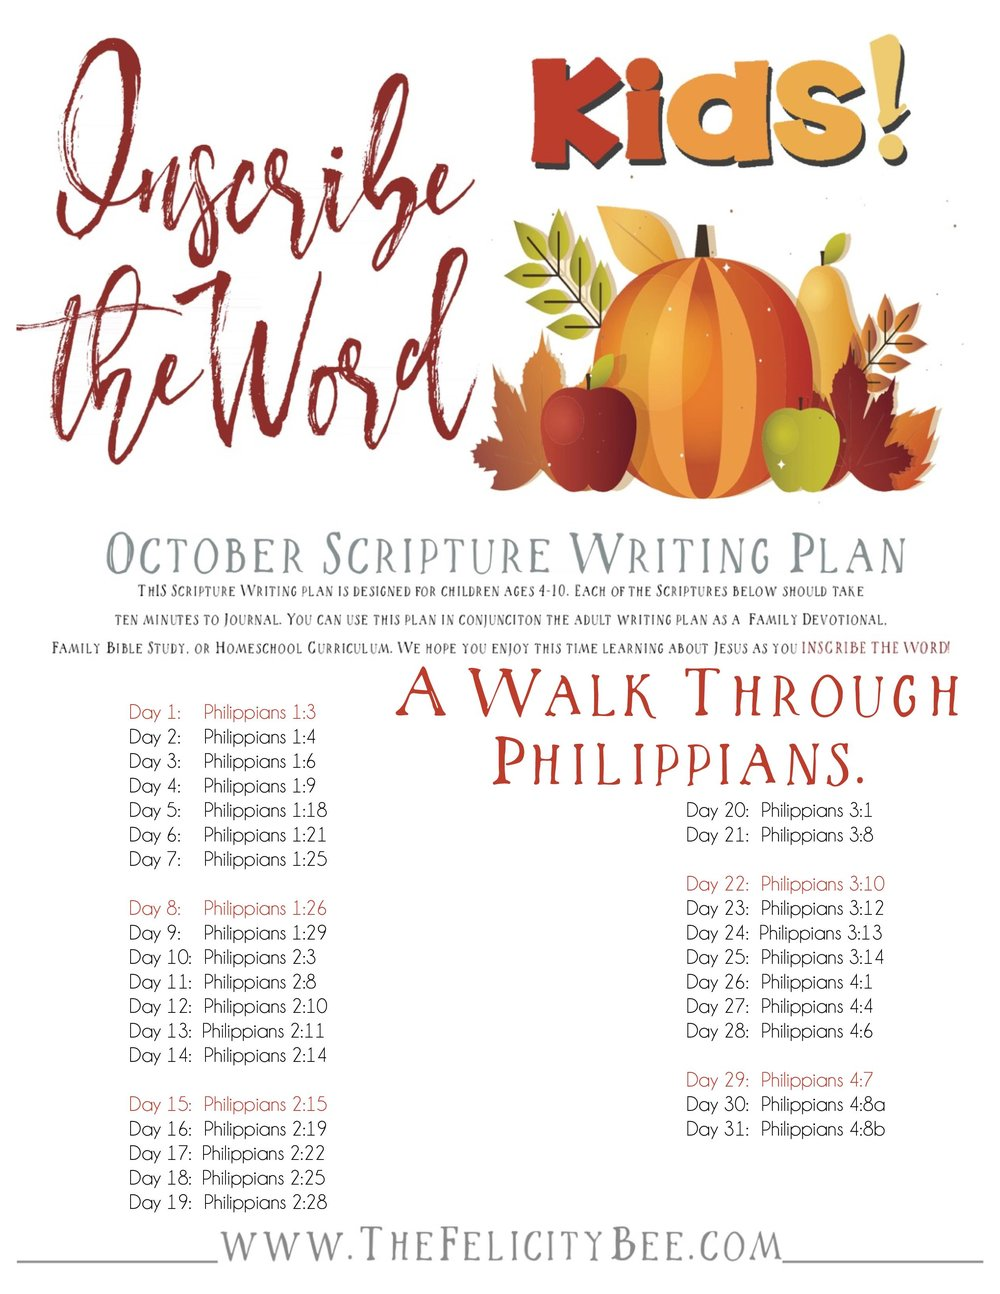 Inscribe-the-word-scripture-writing-plans